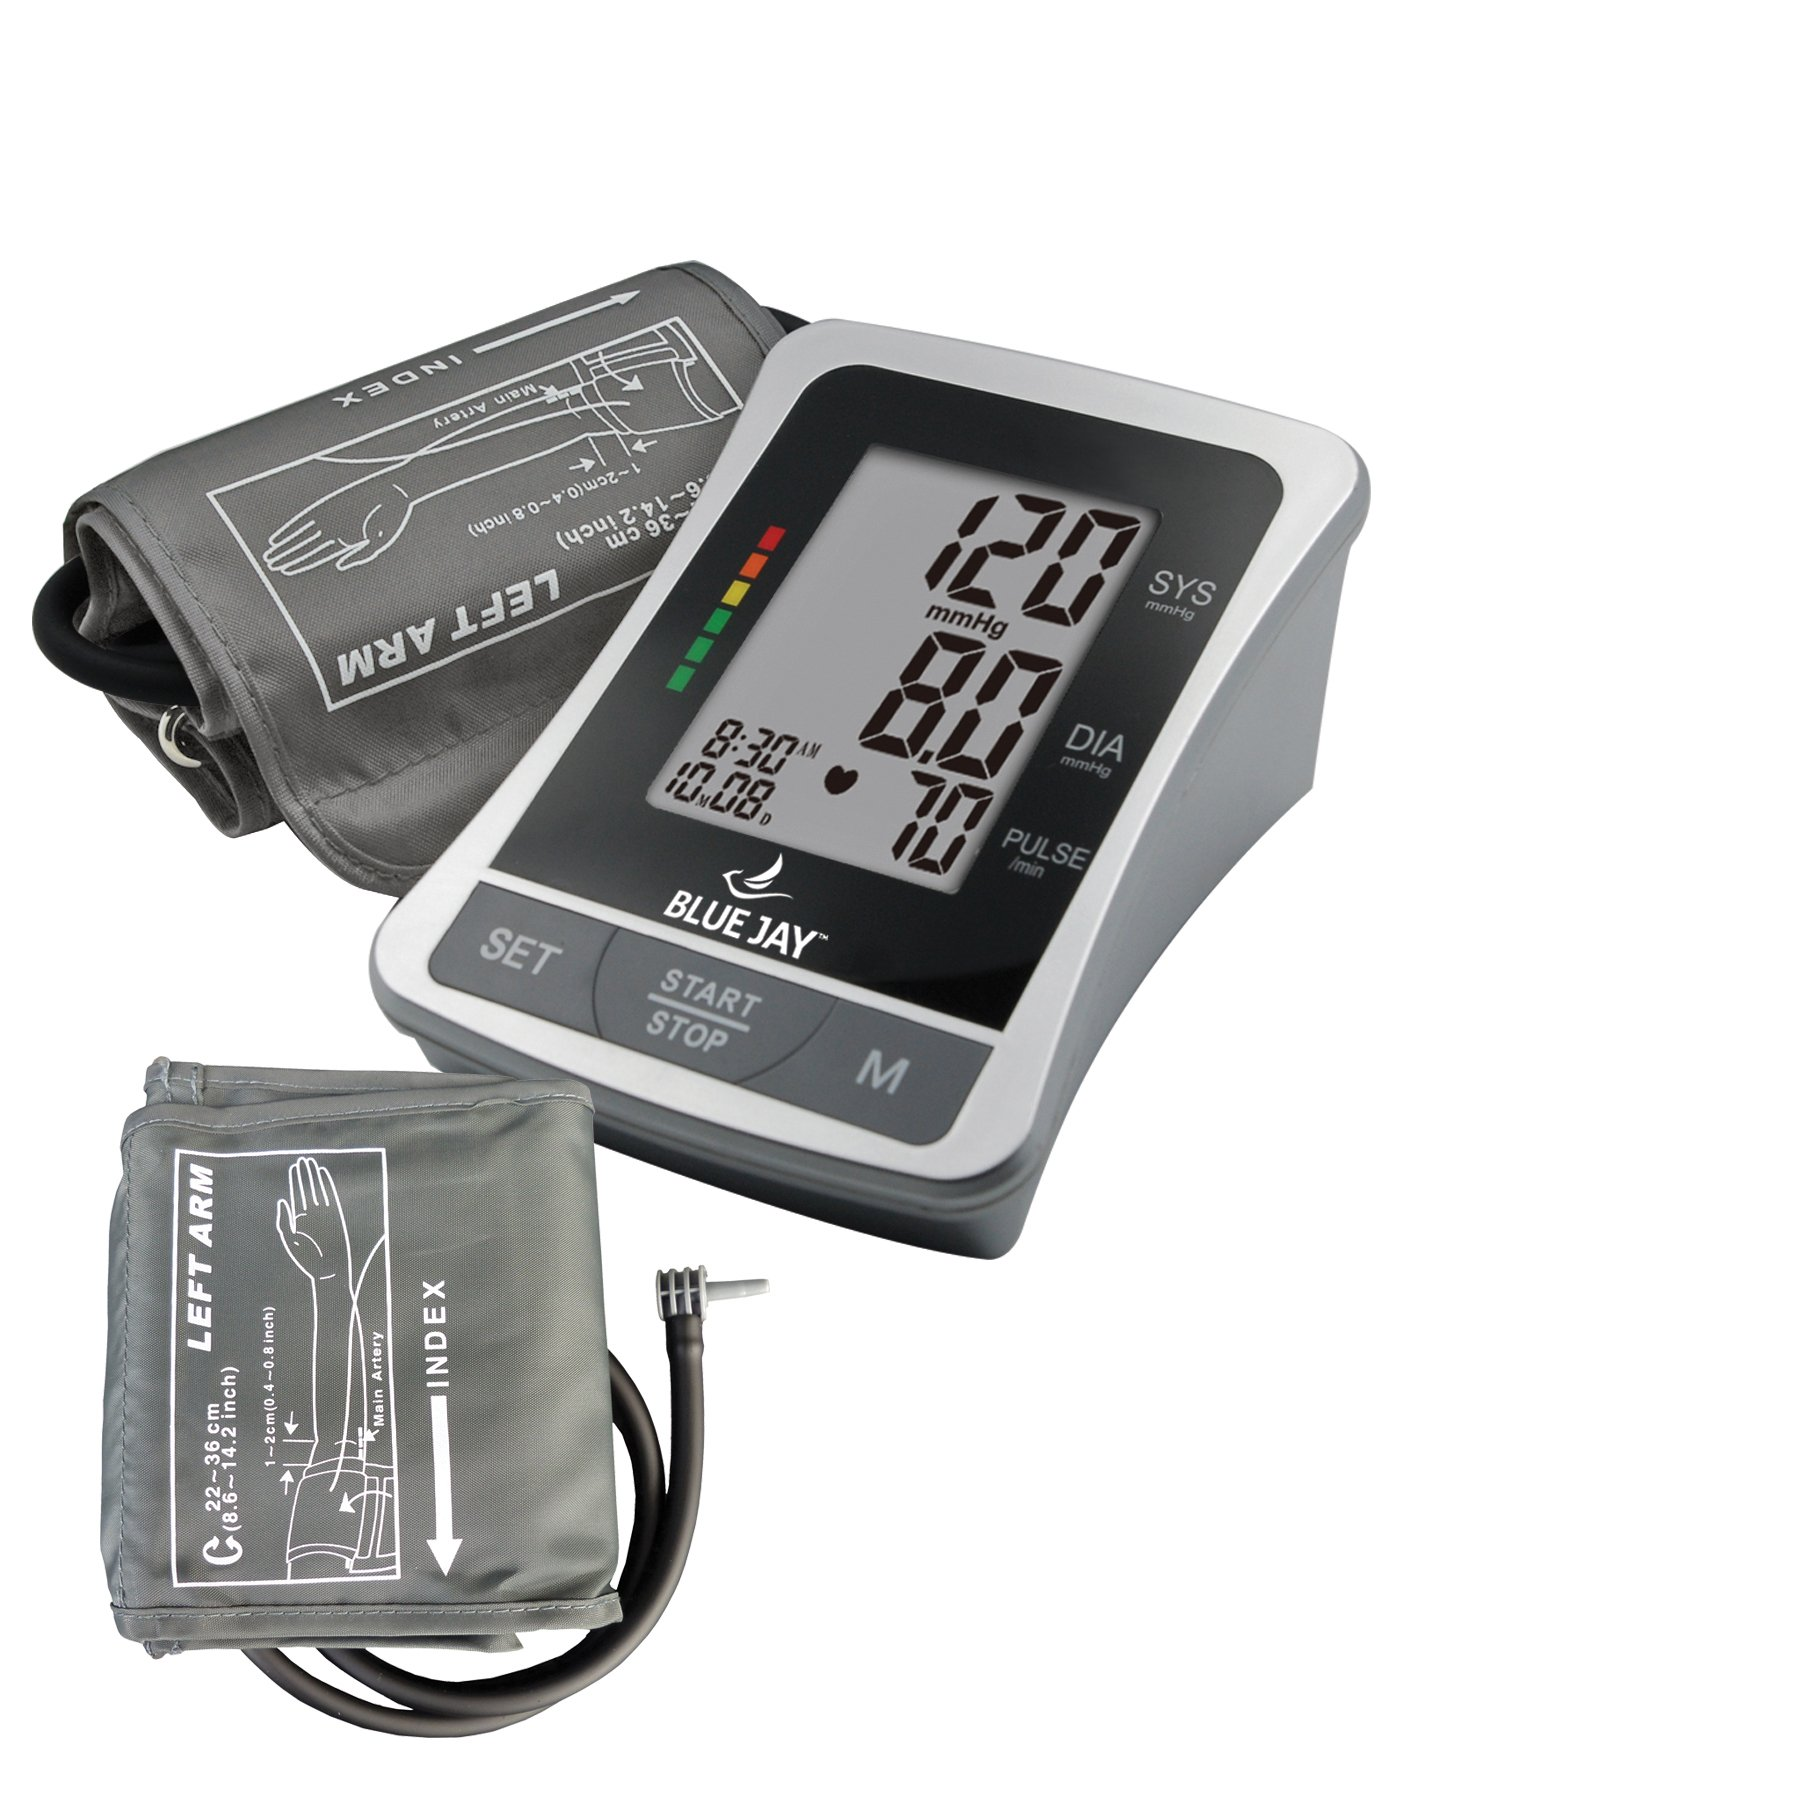 Blue Jay Perfect Measure Automatic Blood Pressure Monitor, One-Touch Function, LCD Display, 120 Memory Recall with Date and Time Stamp, 2 Adult Arm Cuff, Health Monitors